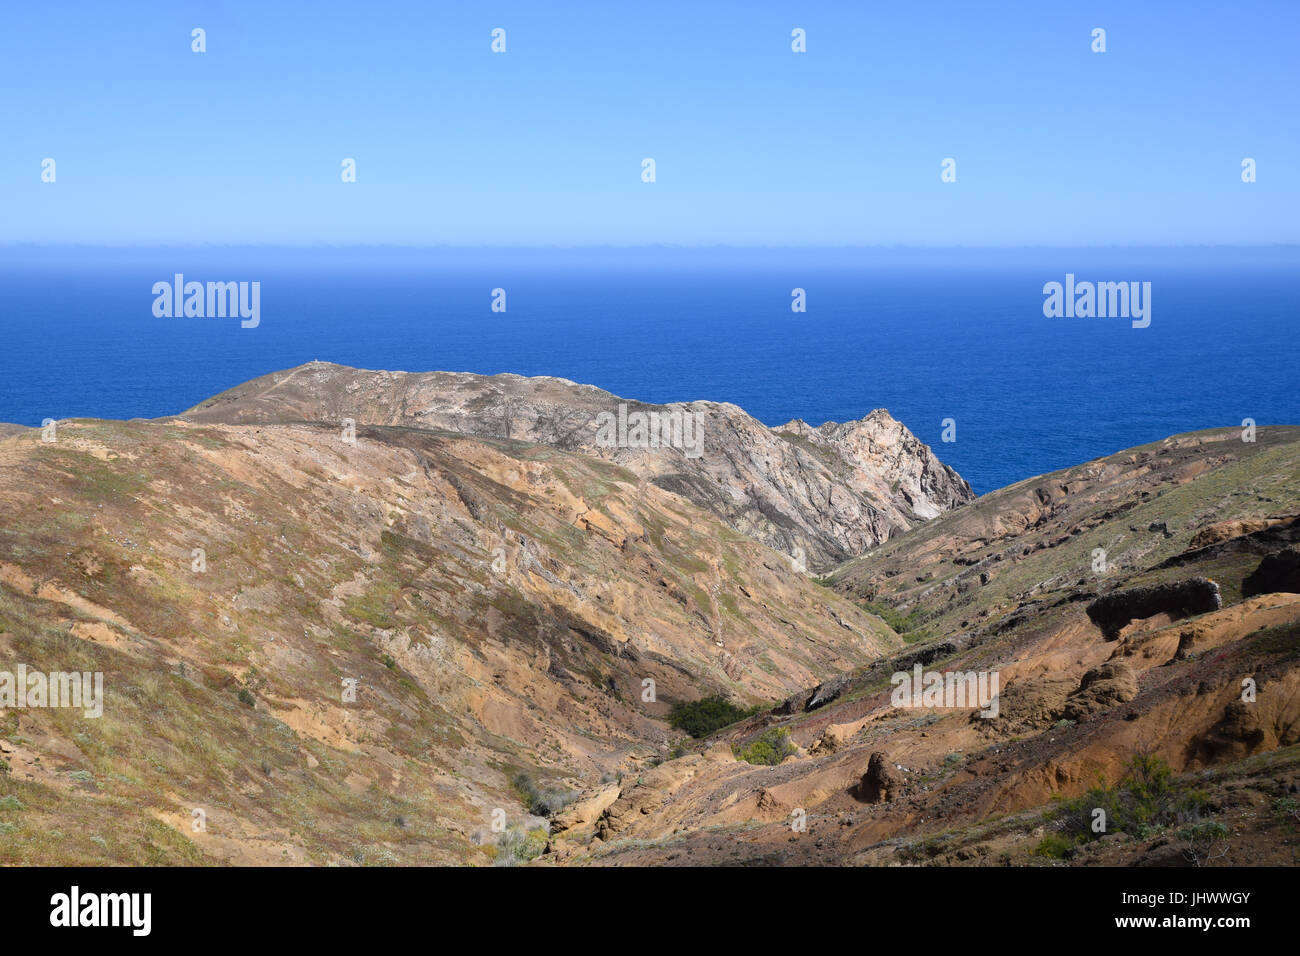 Geological landscape of the north east side of Porto Santo Island, Portugal - Stock Image